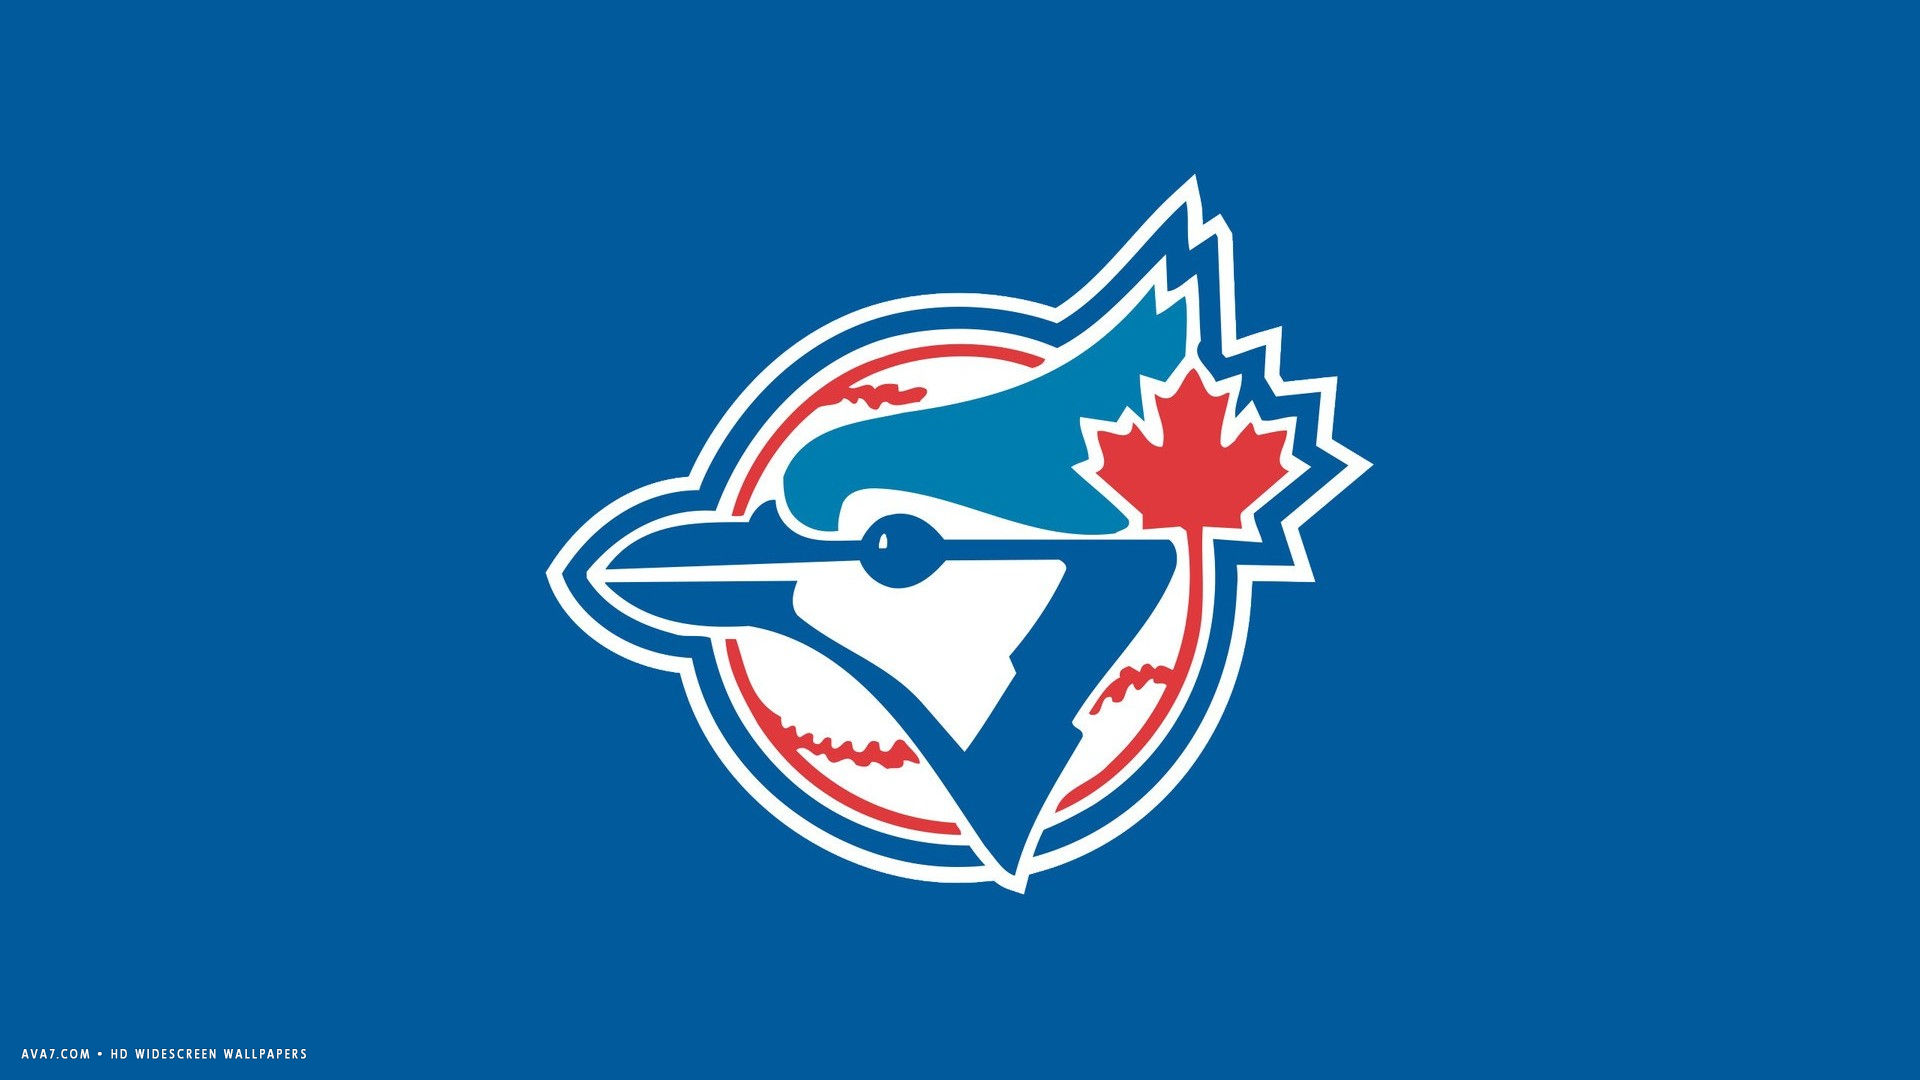 toronto blue jays mlb baseball team hd widescreen wallpaper baseball 1920x1080